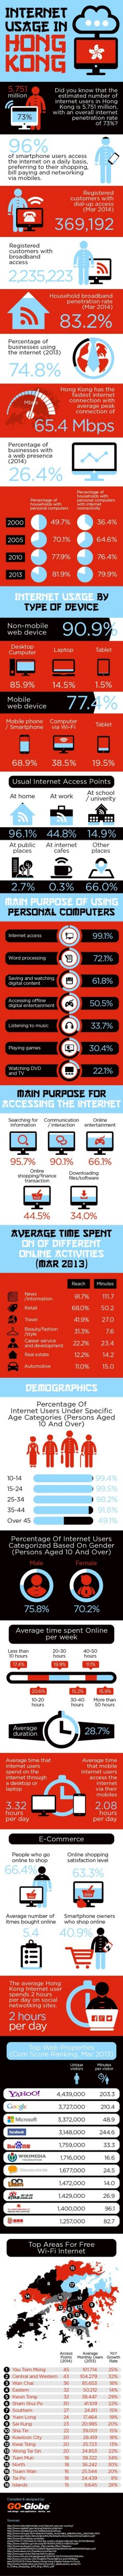 Internet Usage in Hong Kong - Statistics and Trends